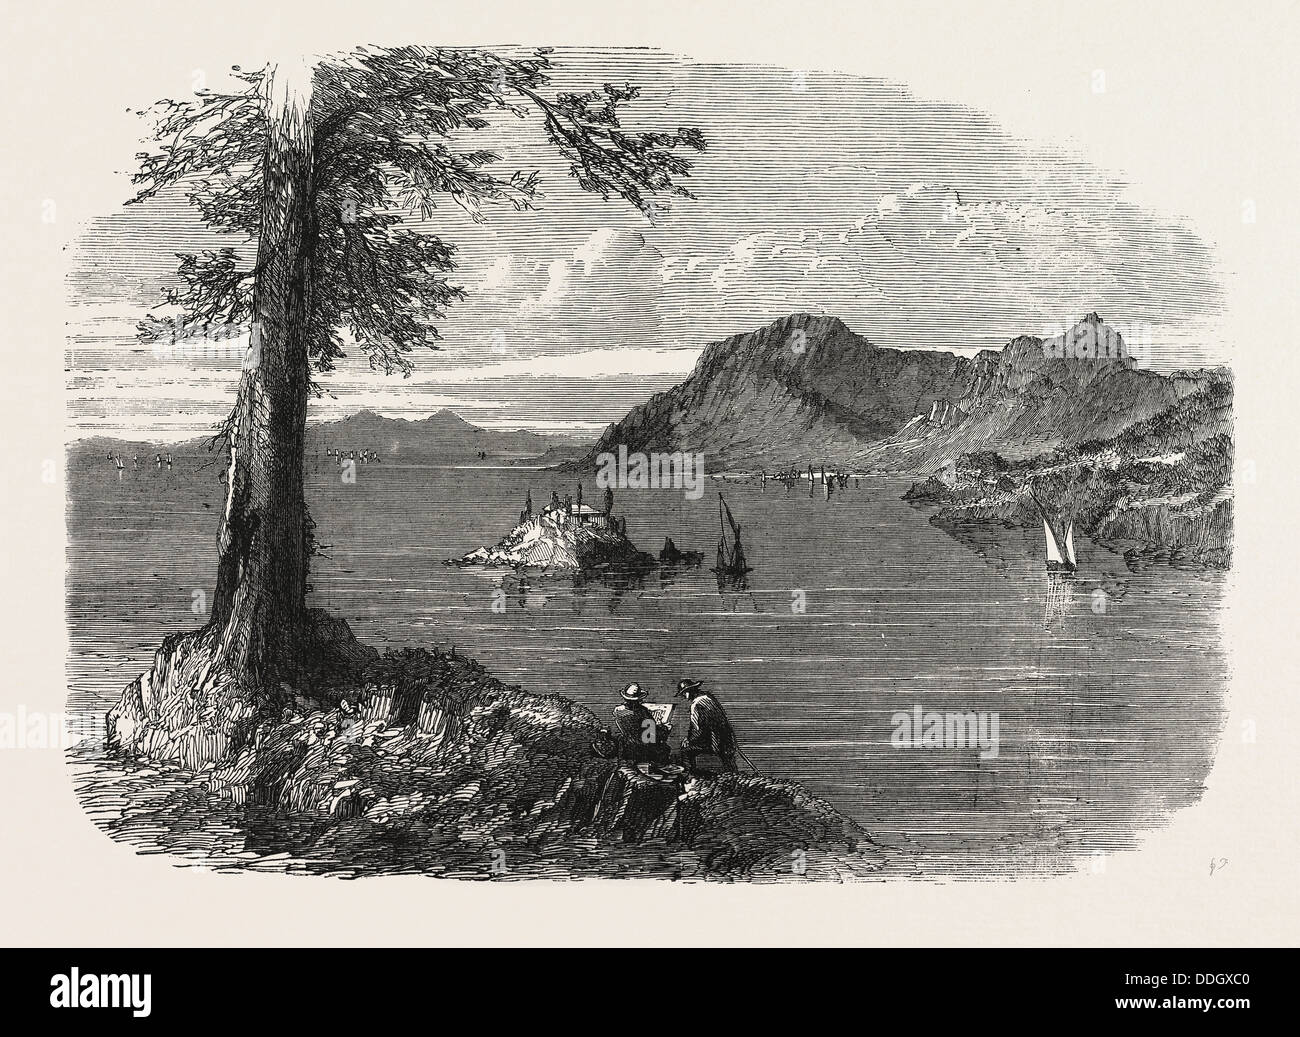 THE IONIAN ISLANDS: CORFU, FROM THE ONE-GUN BATTERY, 1858 - Stock Image